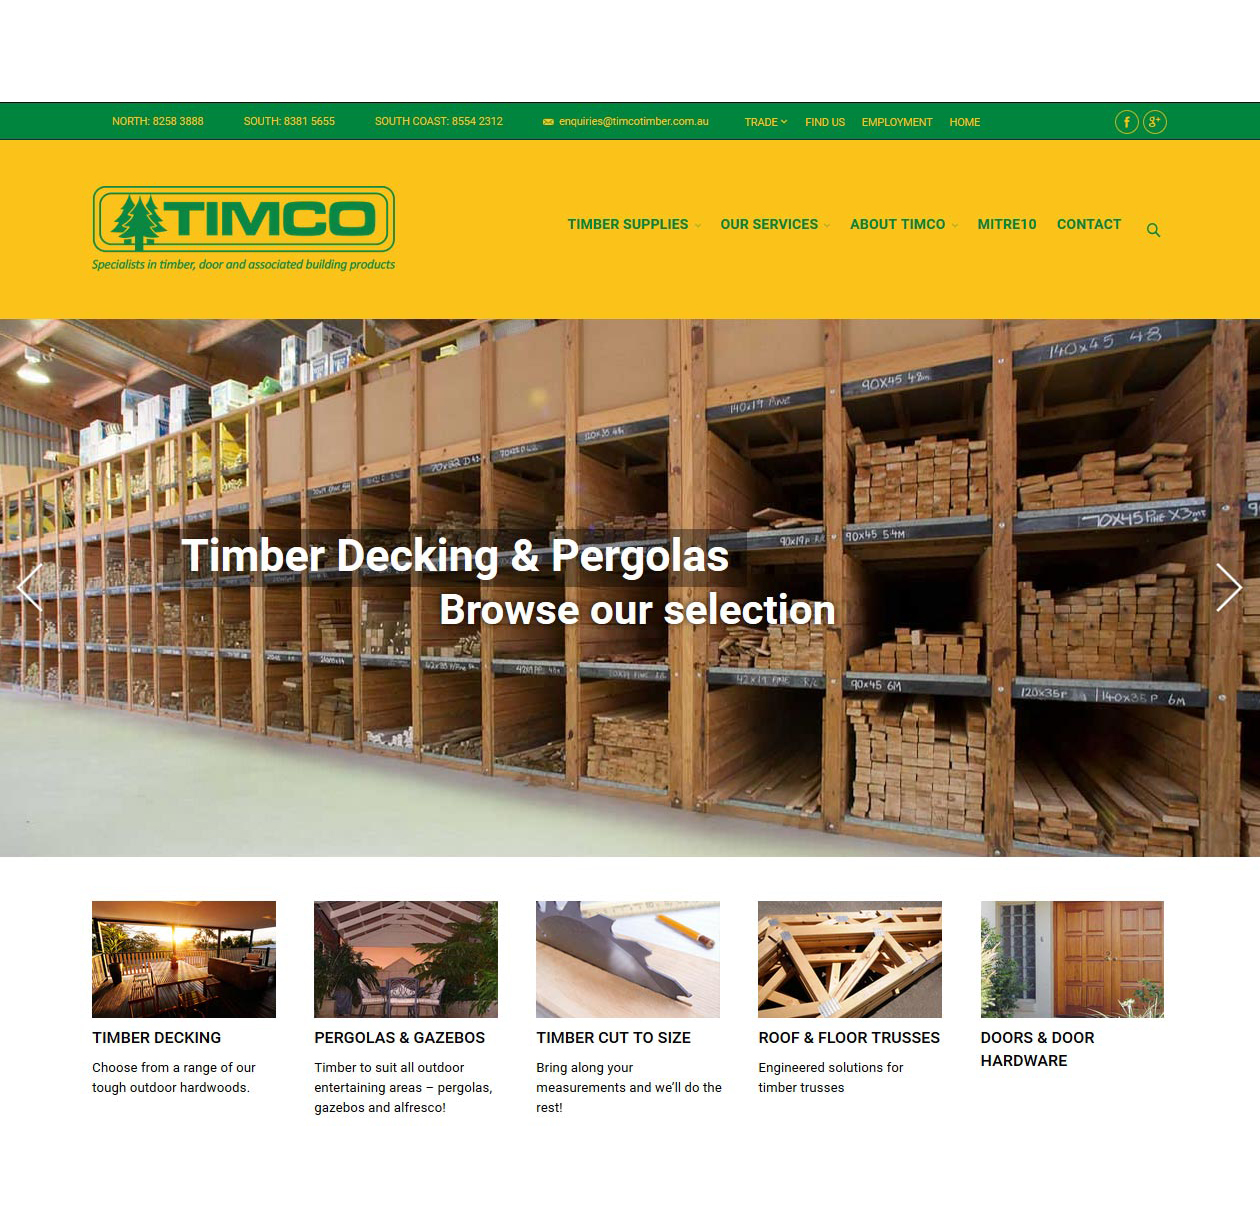 Timco Timber - Easom Images